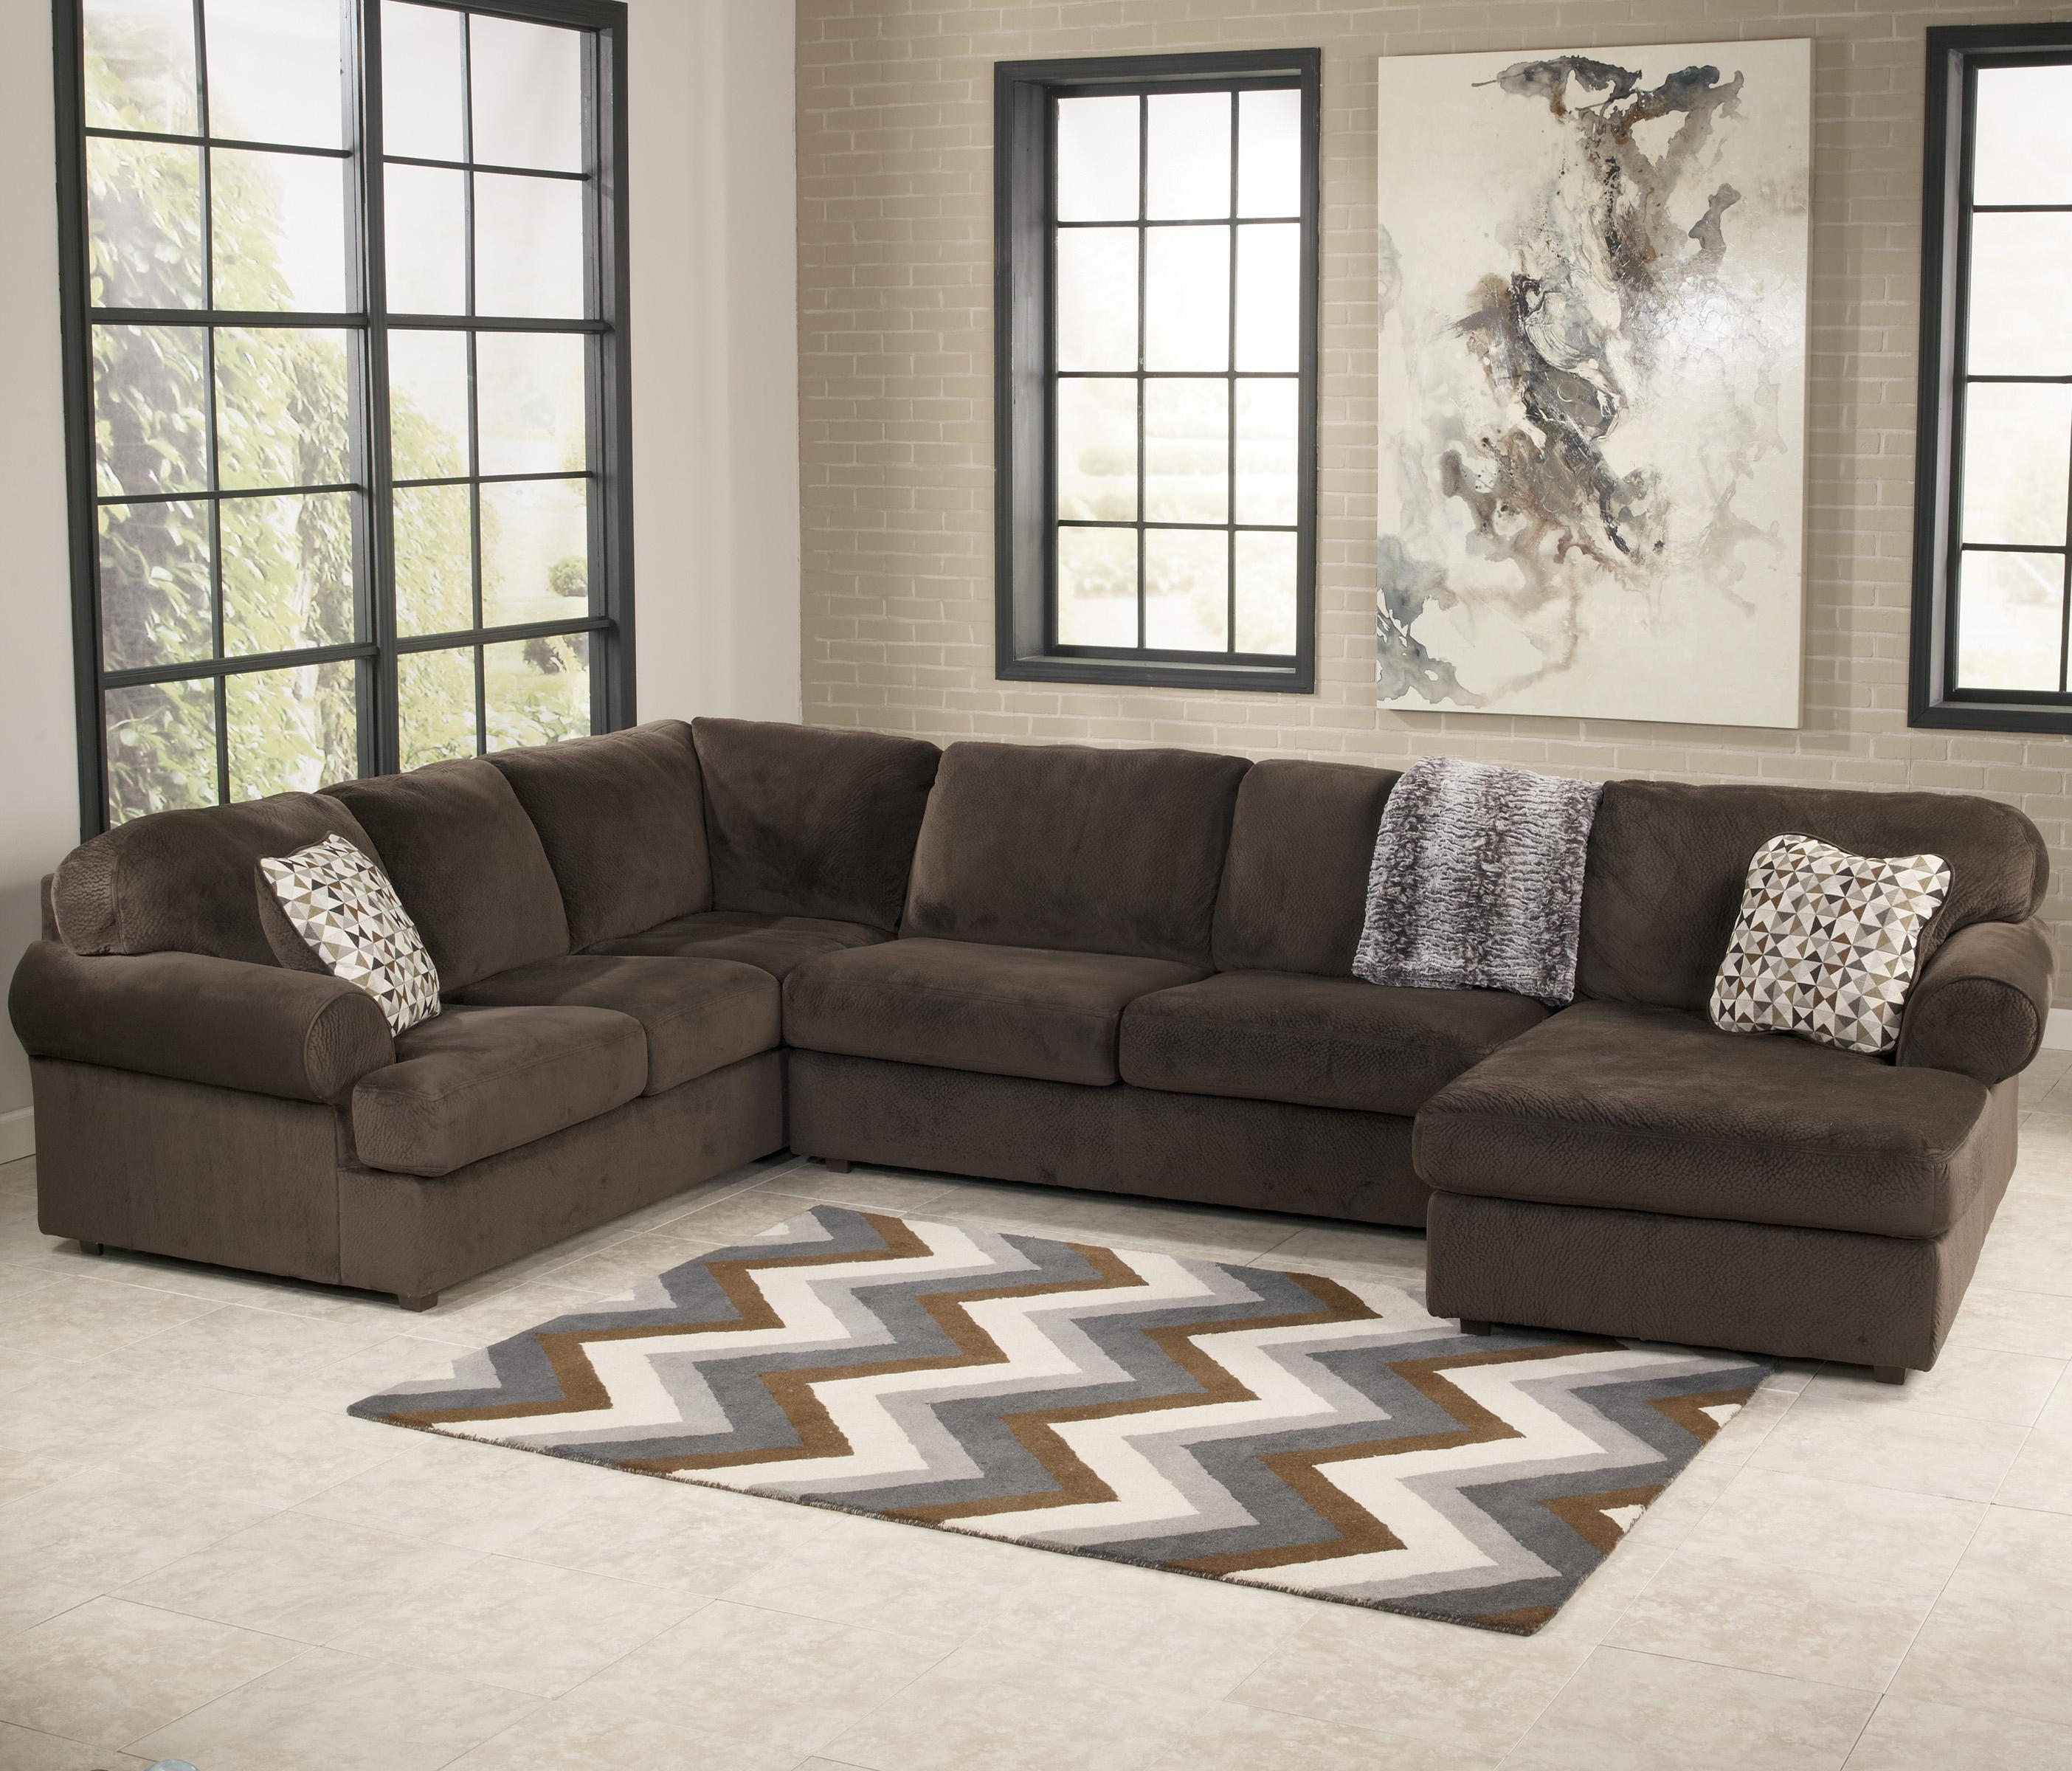 Ashley Signature Design Jessa Place – Chocolate Casual Sectional Intended For Well Known Ashley Furniture Sofa Chaises (View 4 of 15)